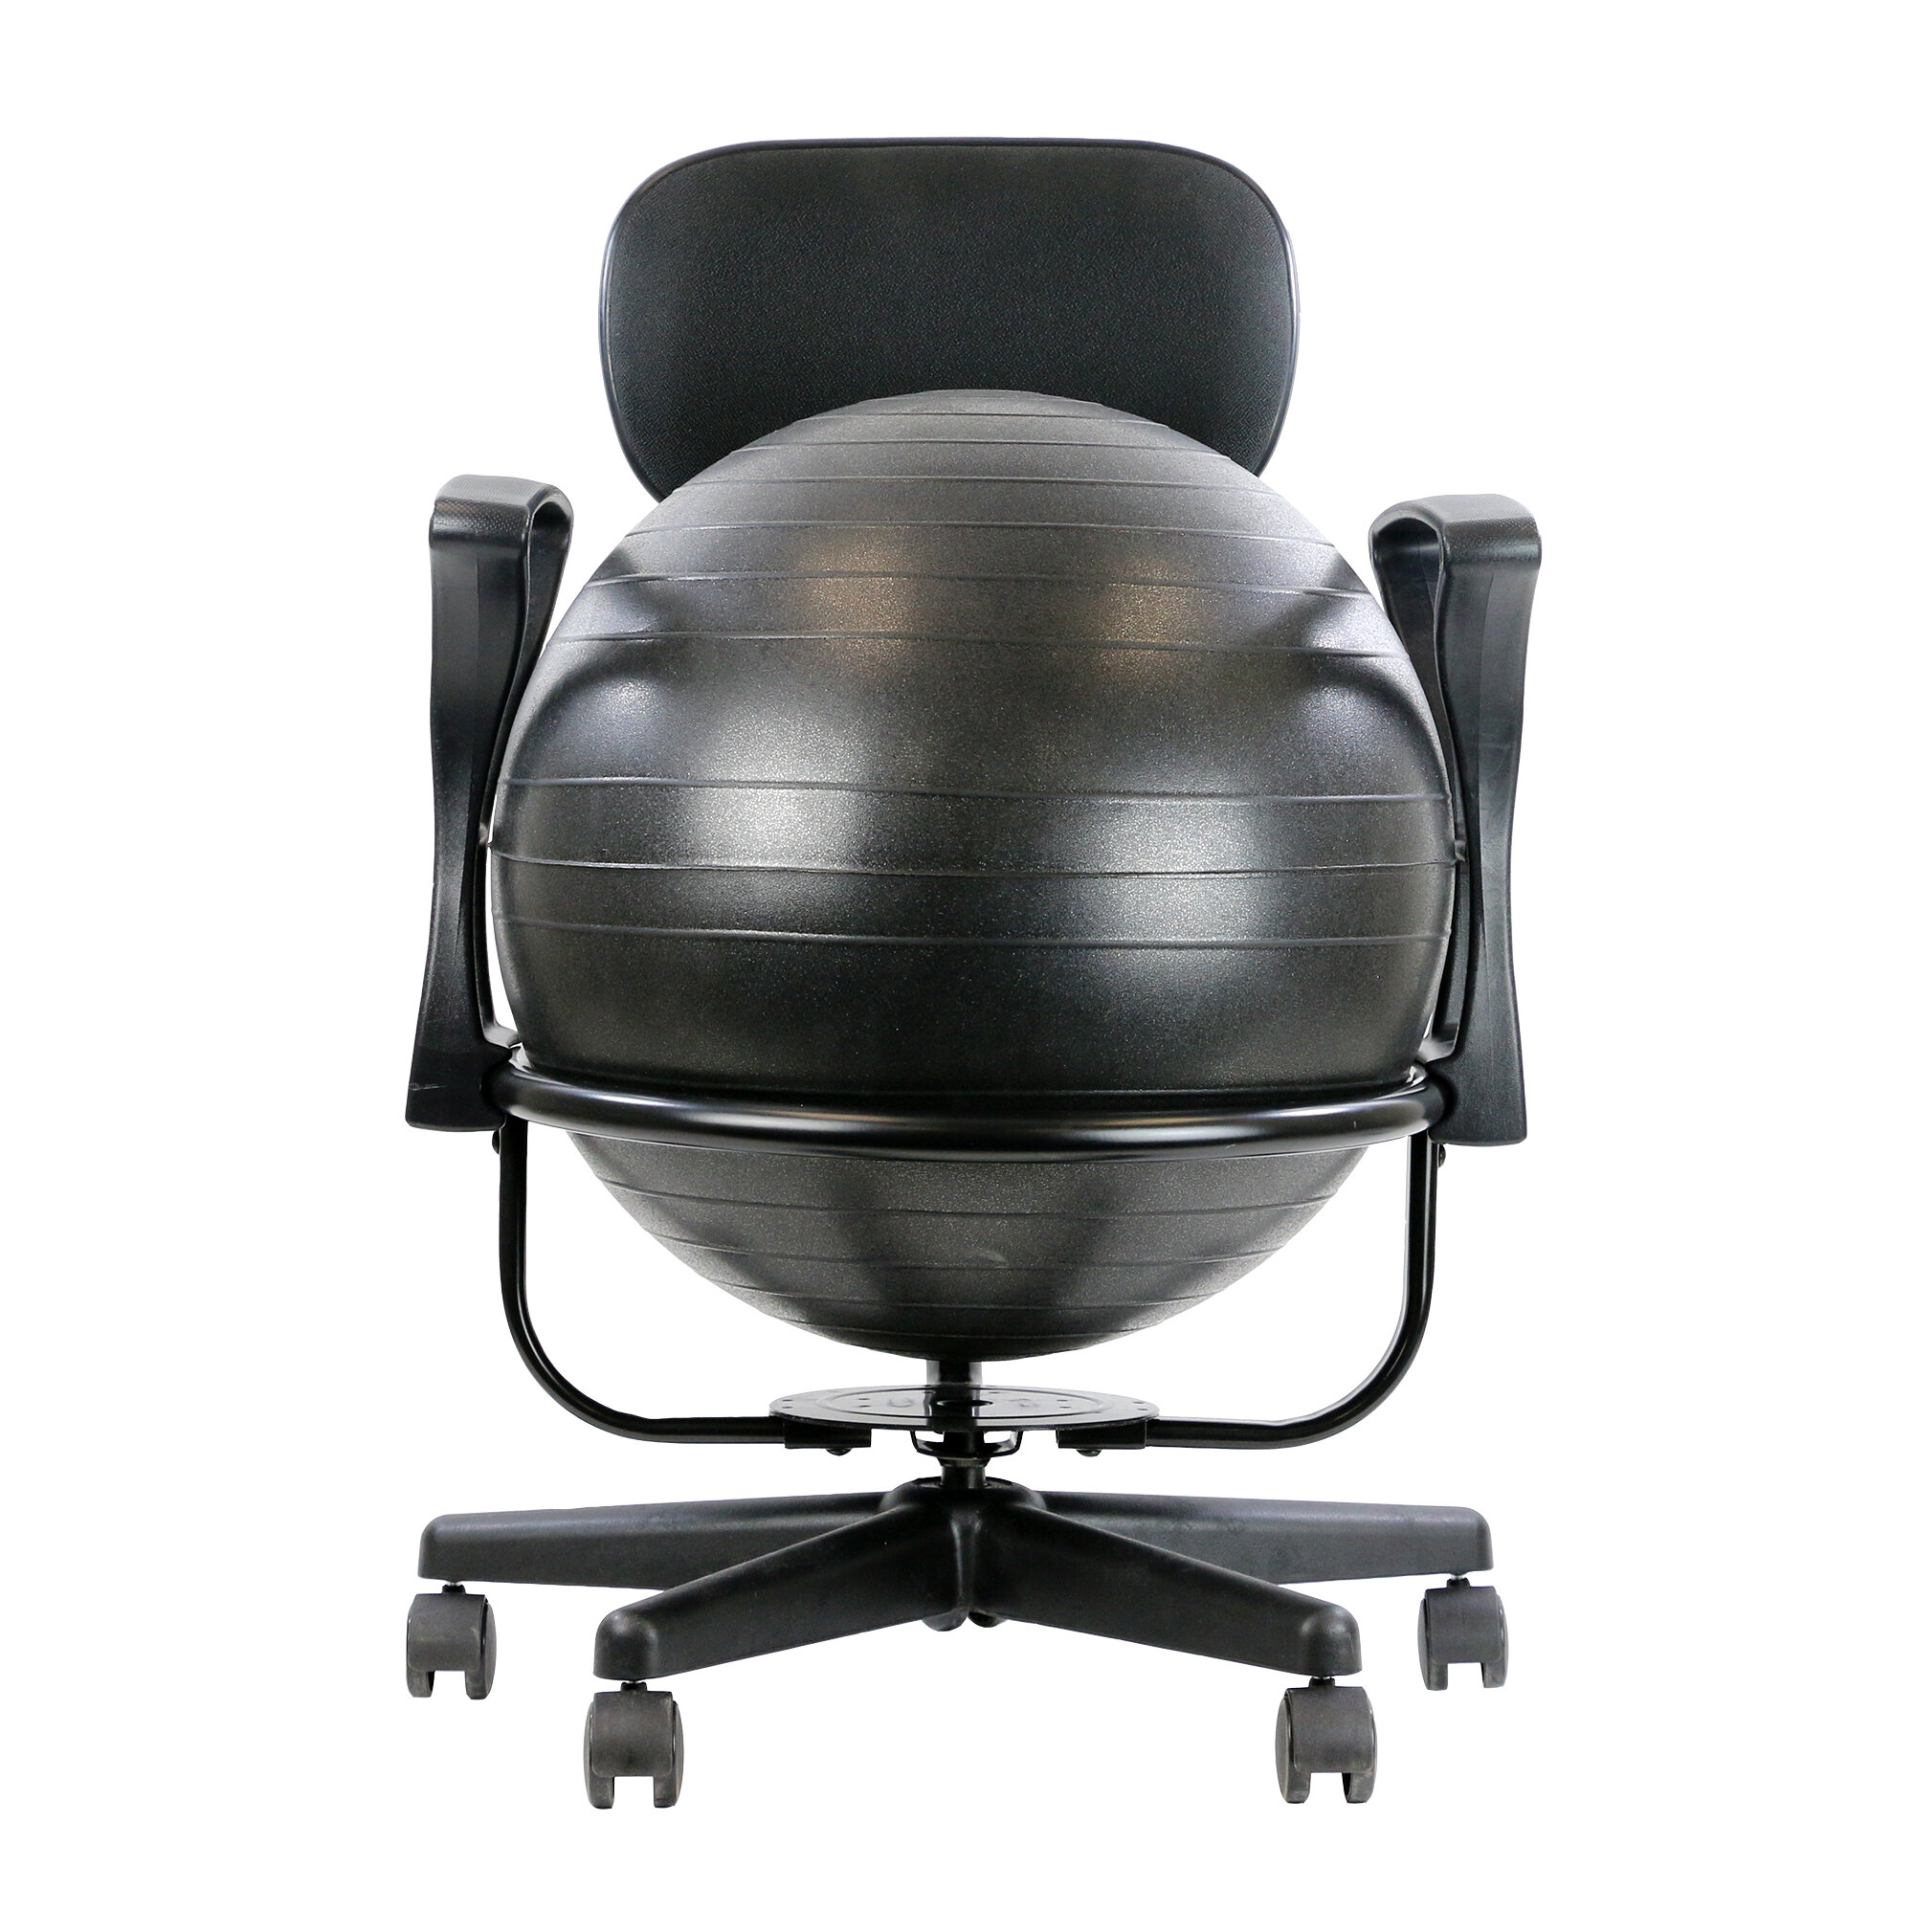 Symple Stuff Exercise Ball Chair